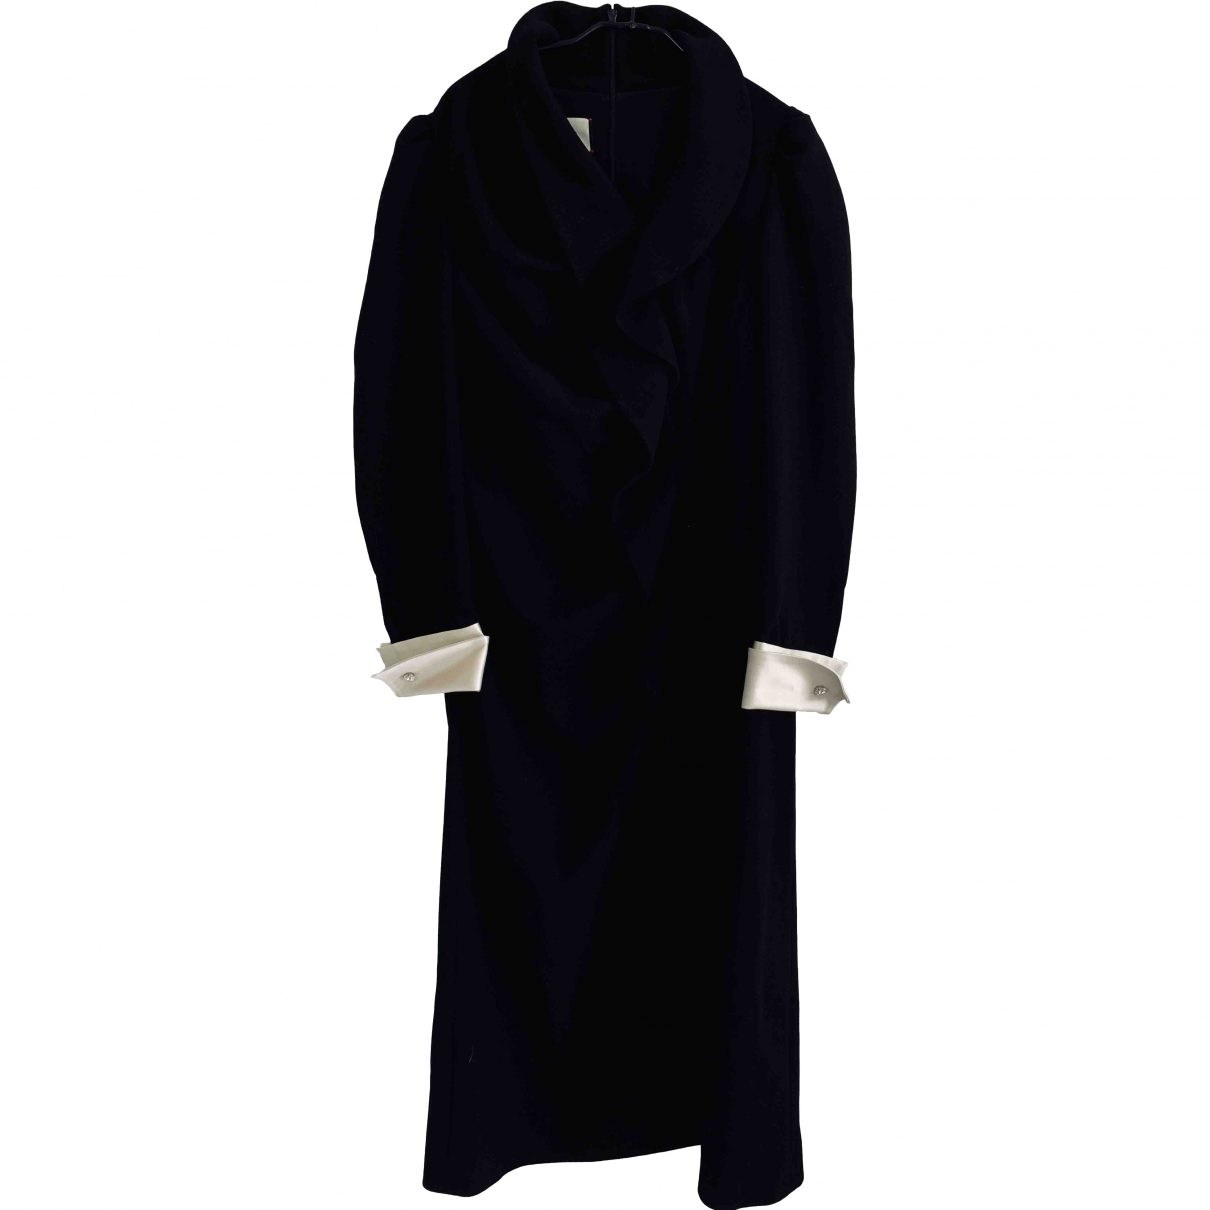 Gucci \N Black Wool dress for Women 46 IT